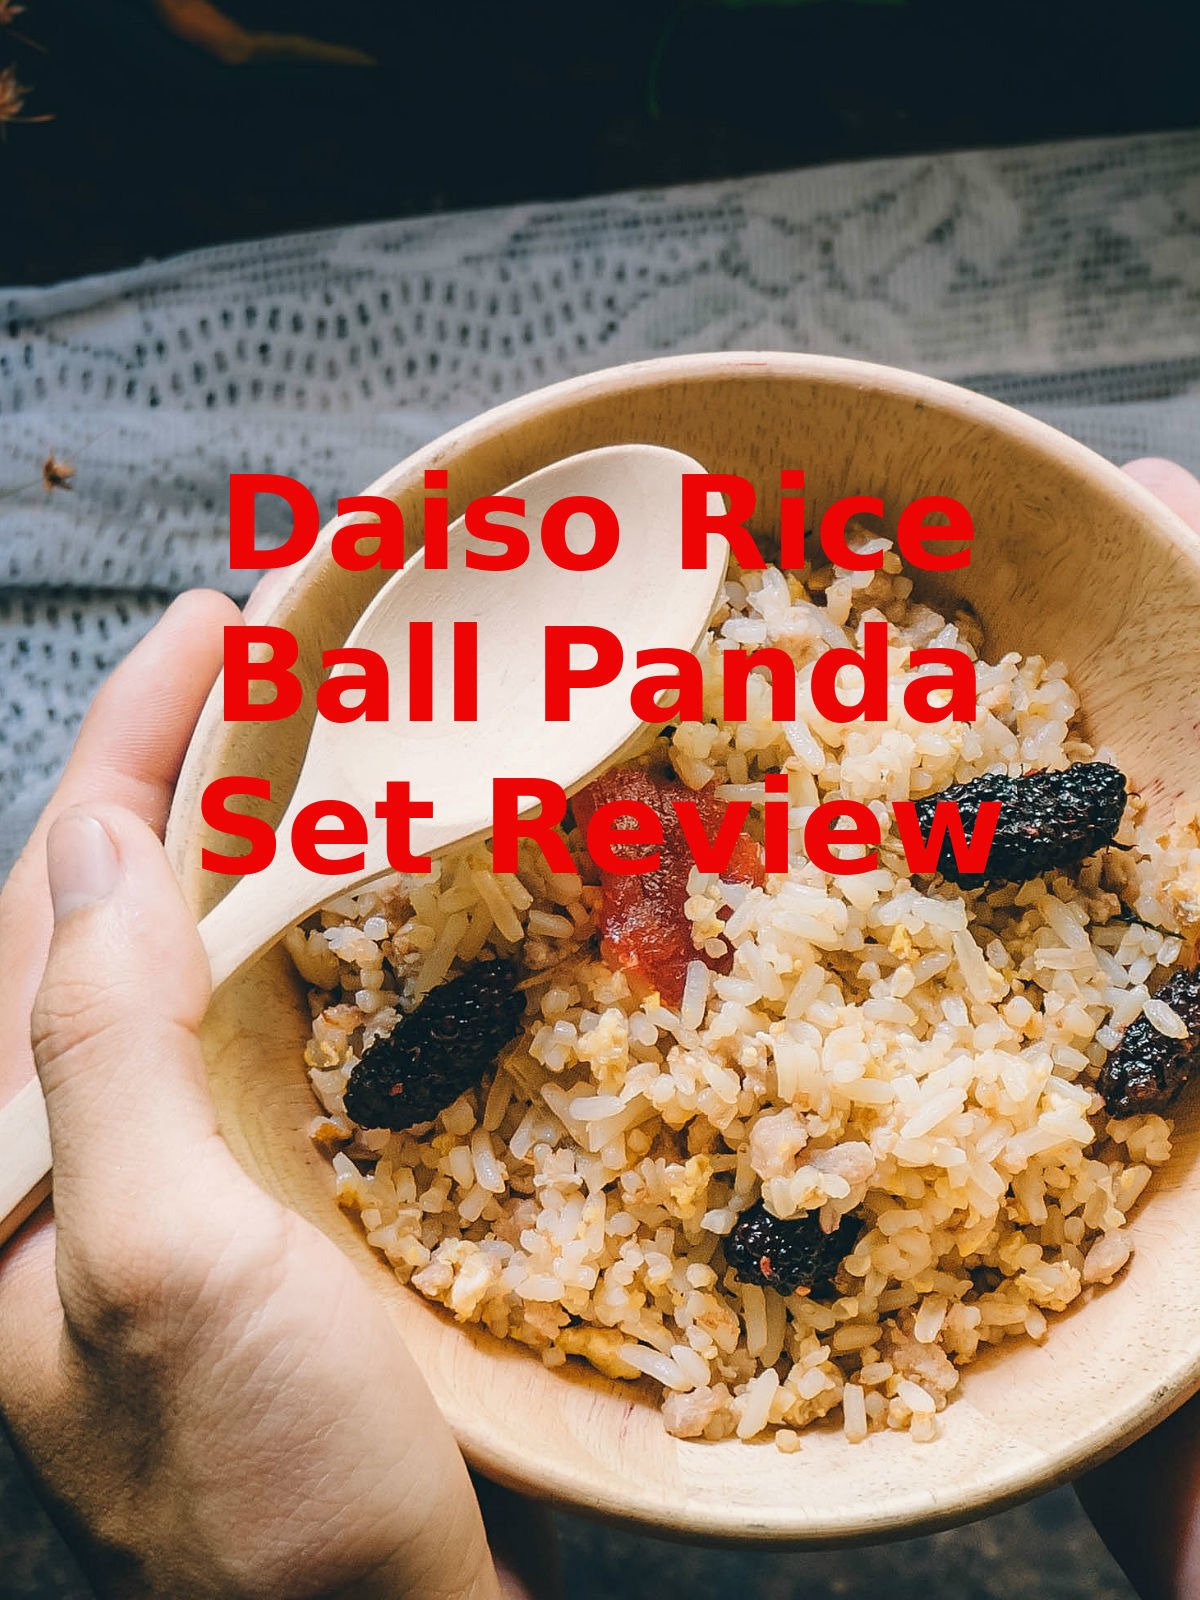 Review: Daiso Rice Ball Panda Set Review on Amazon Prime Video UK